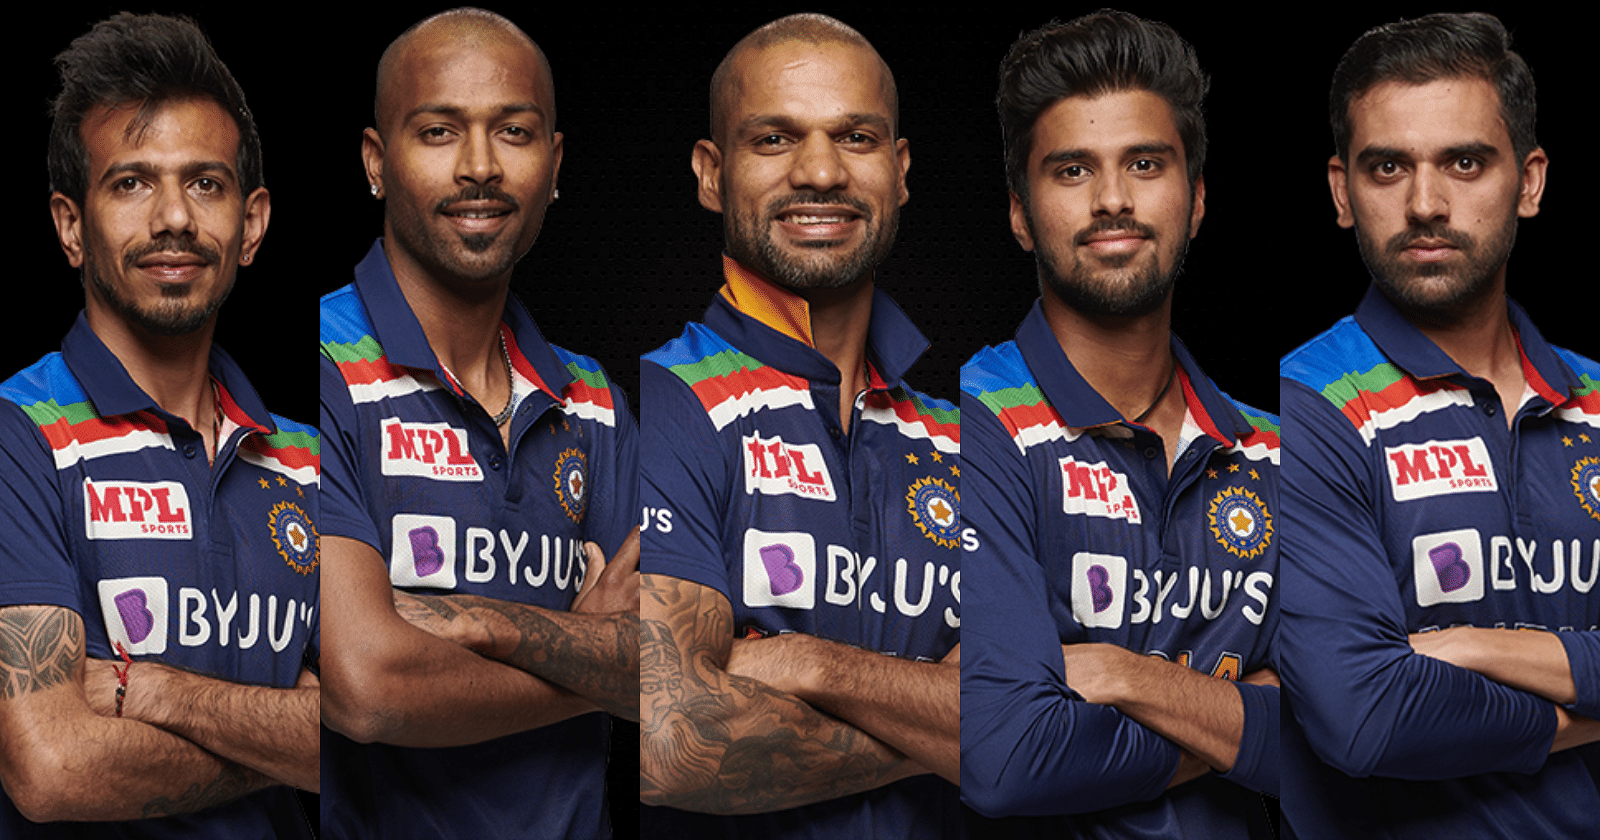 Sri Lanka Vs India 2021 Complete Schedule Venues Distribution Of Points Complete Squads And Live Streaming